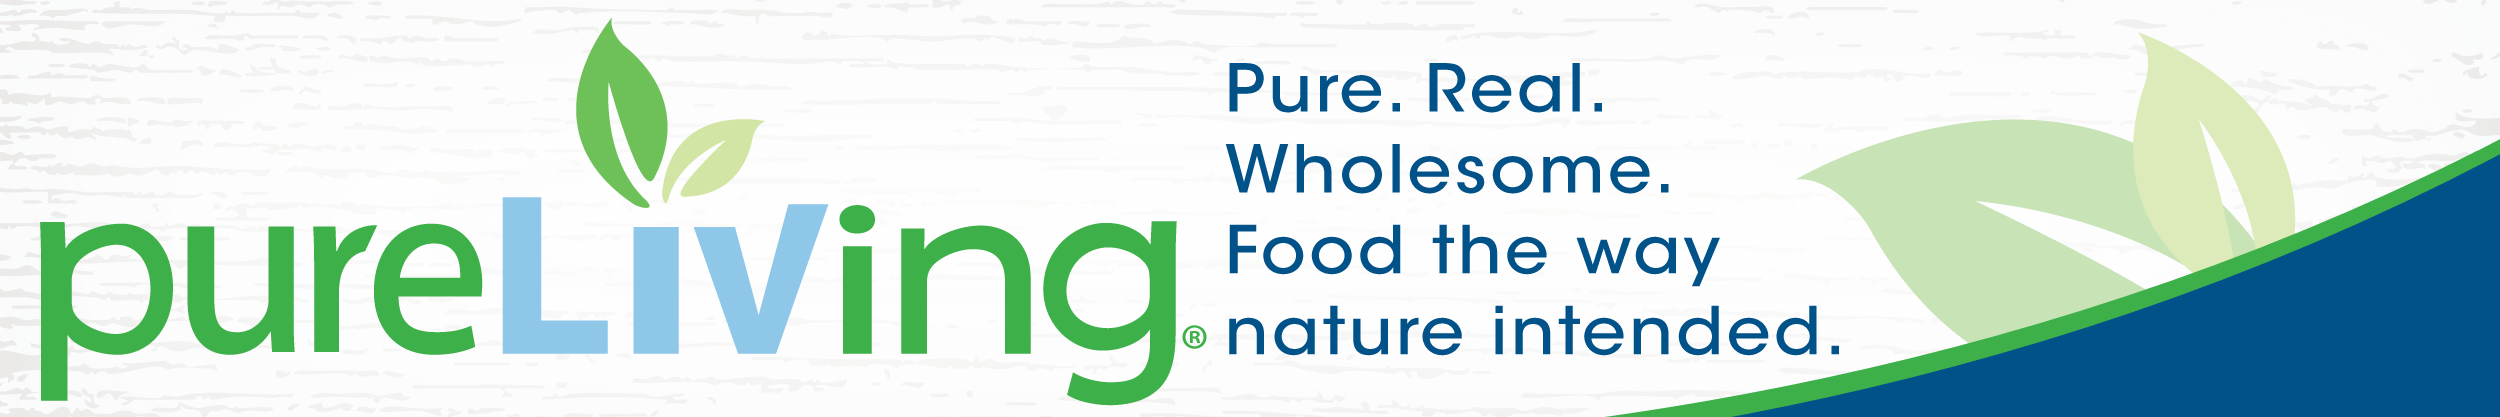 PureLiving / Organic Sprouted Flours, Grains, Beans, & Seeds / Organic Fermented Vegetables